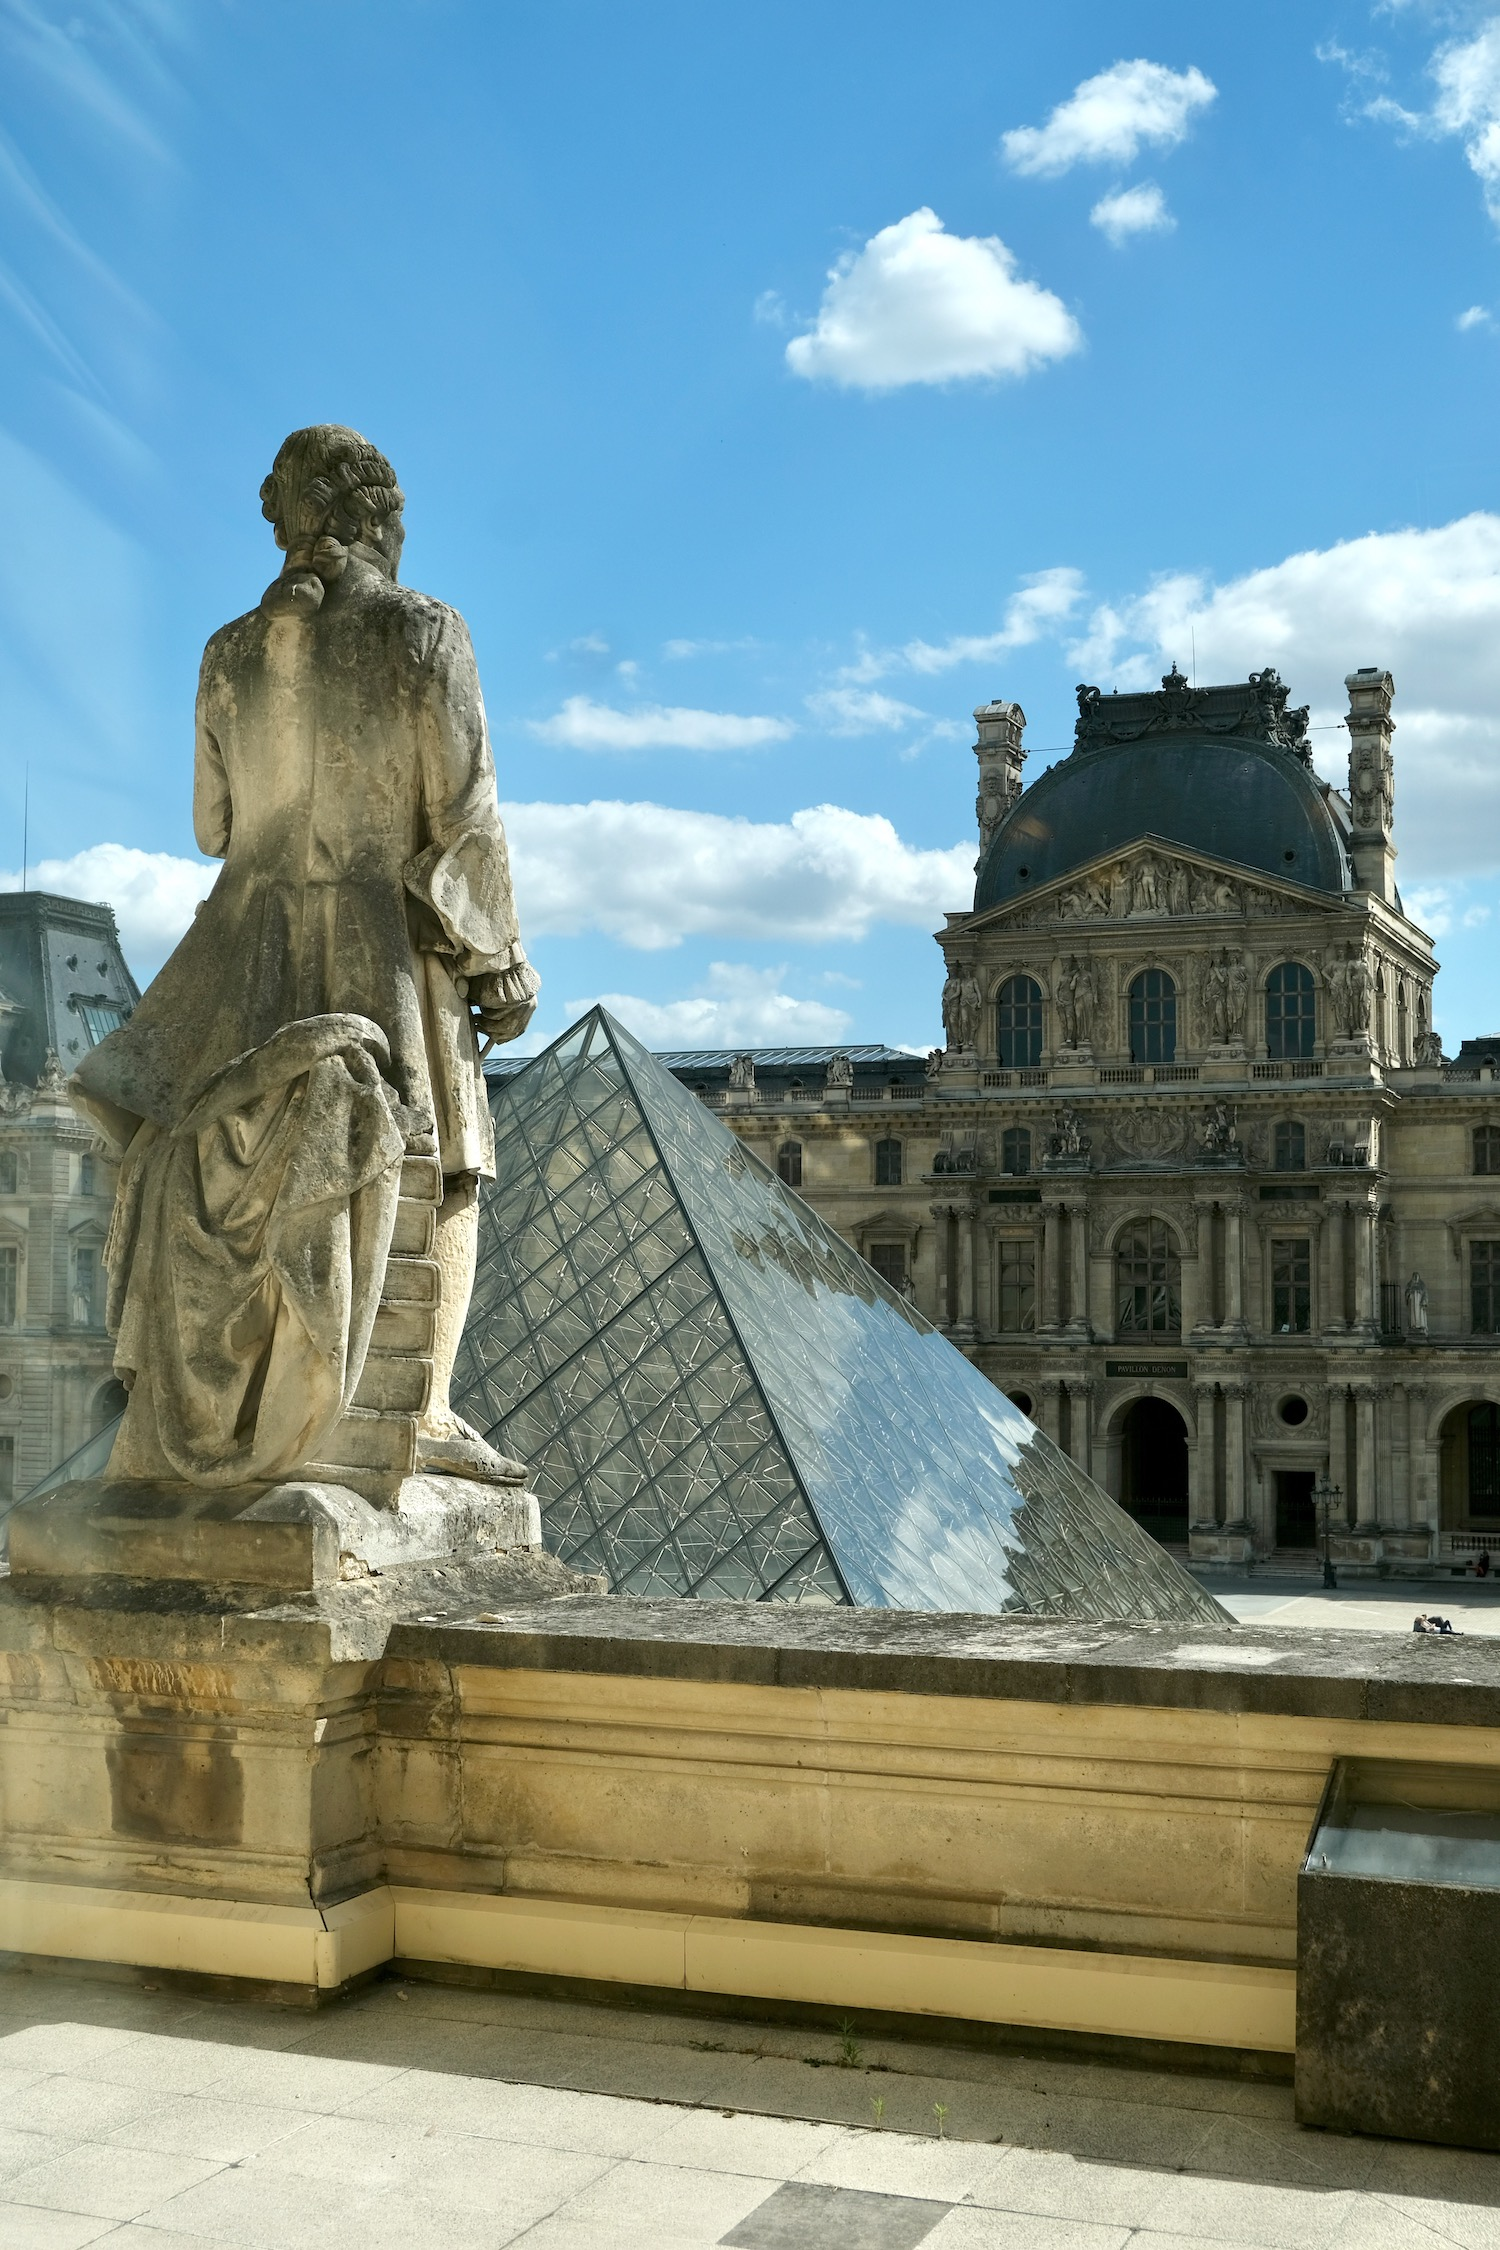 Five Friday Finds from France Musée du Louvre with Unsolved Mysteries French episode and the best hot chicken sandwich in Paris